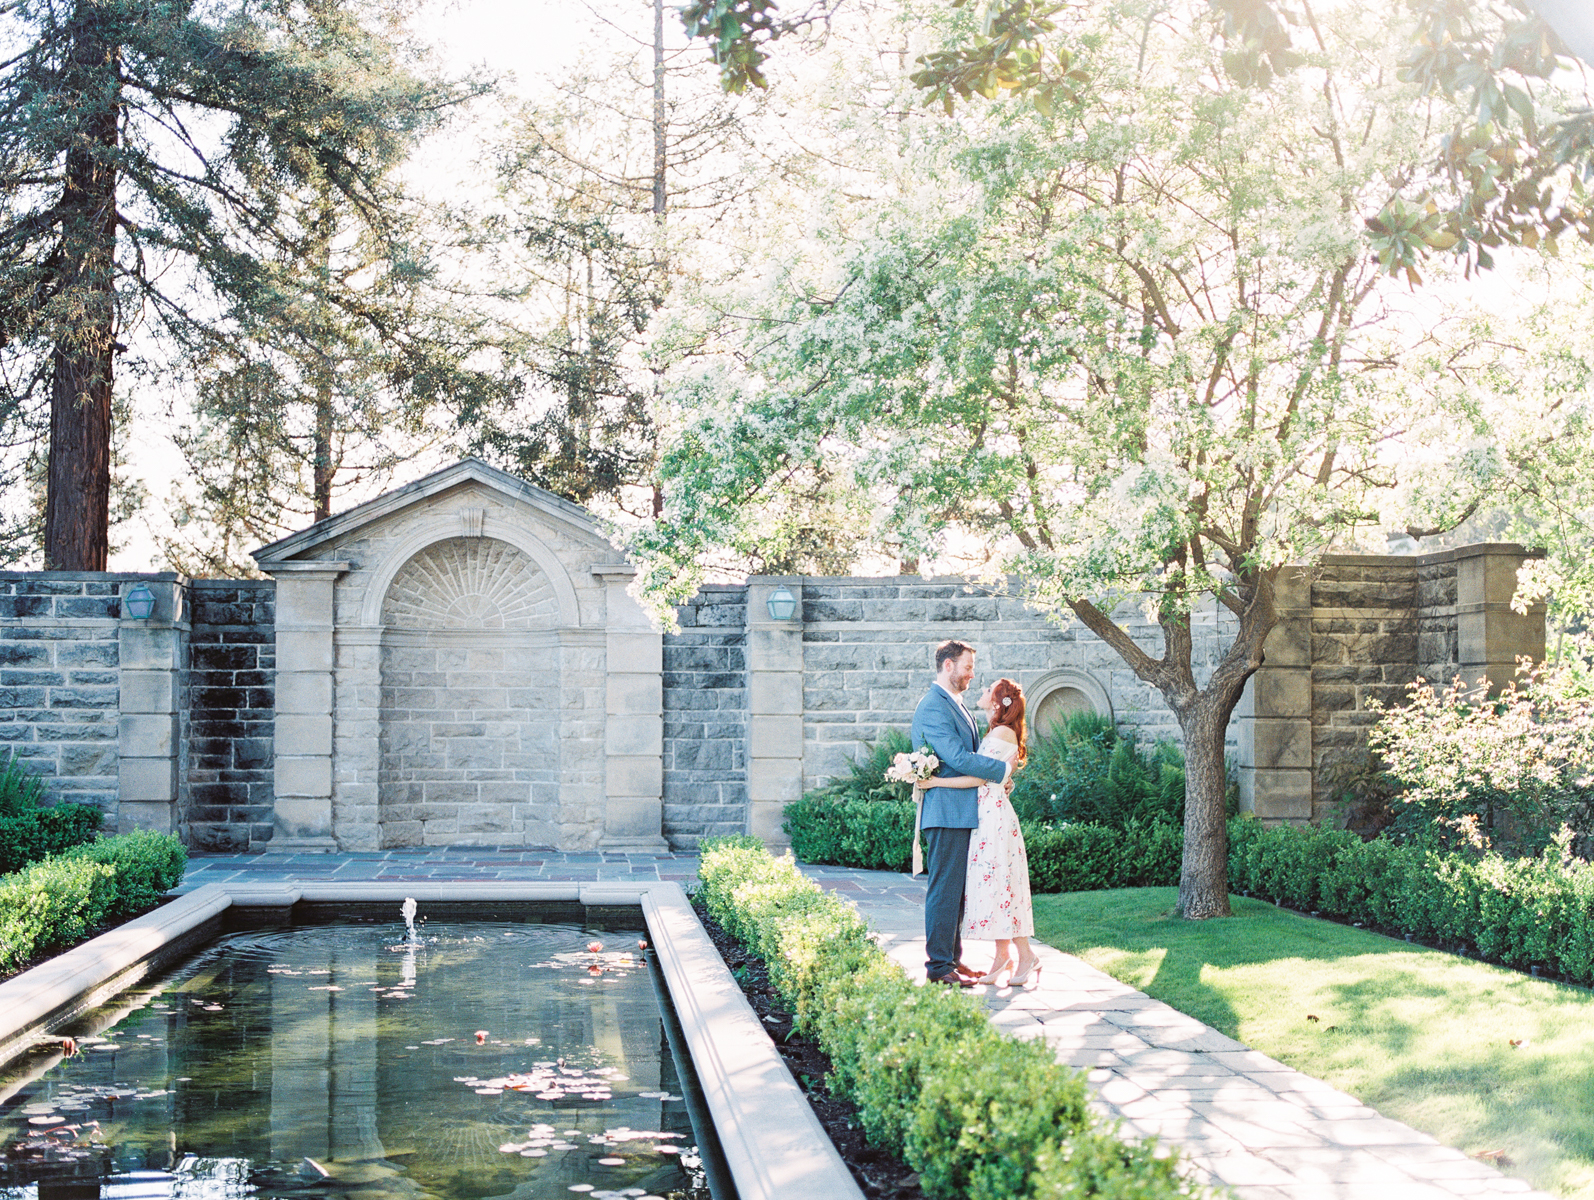 AKP_Greystone_Mansion_Engagement_Session_Film_Photographer-12.jpg